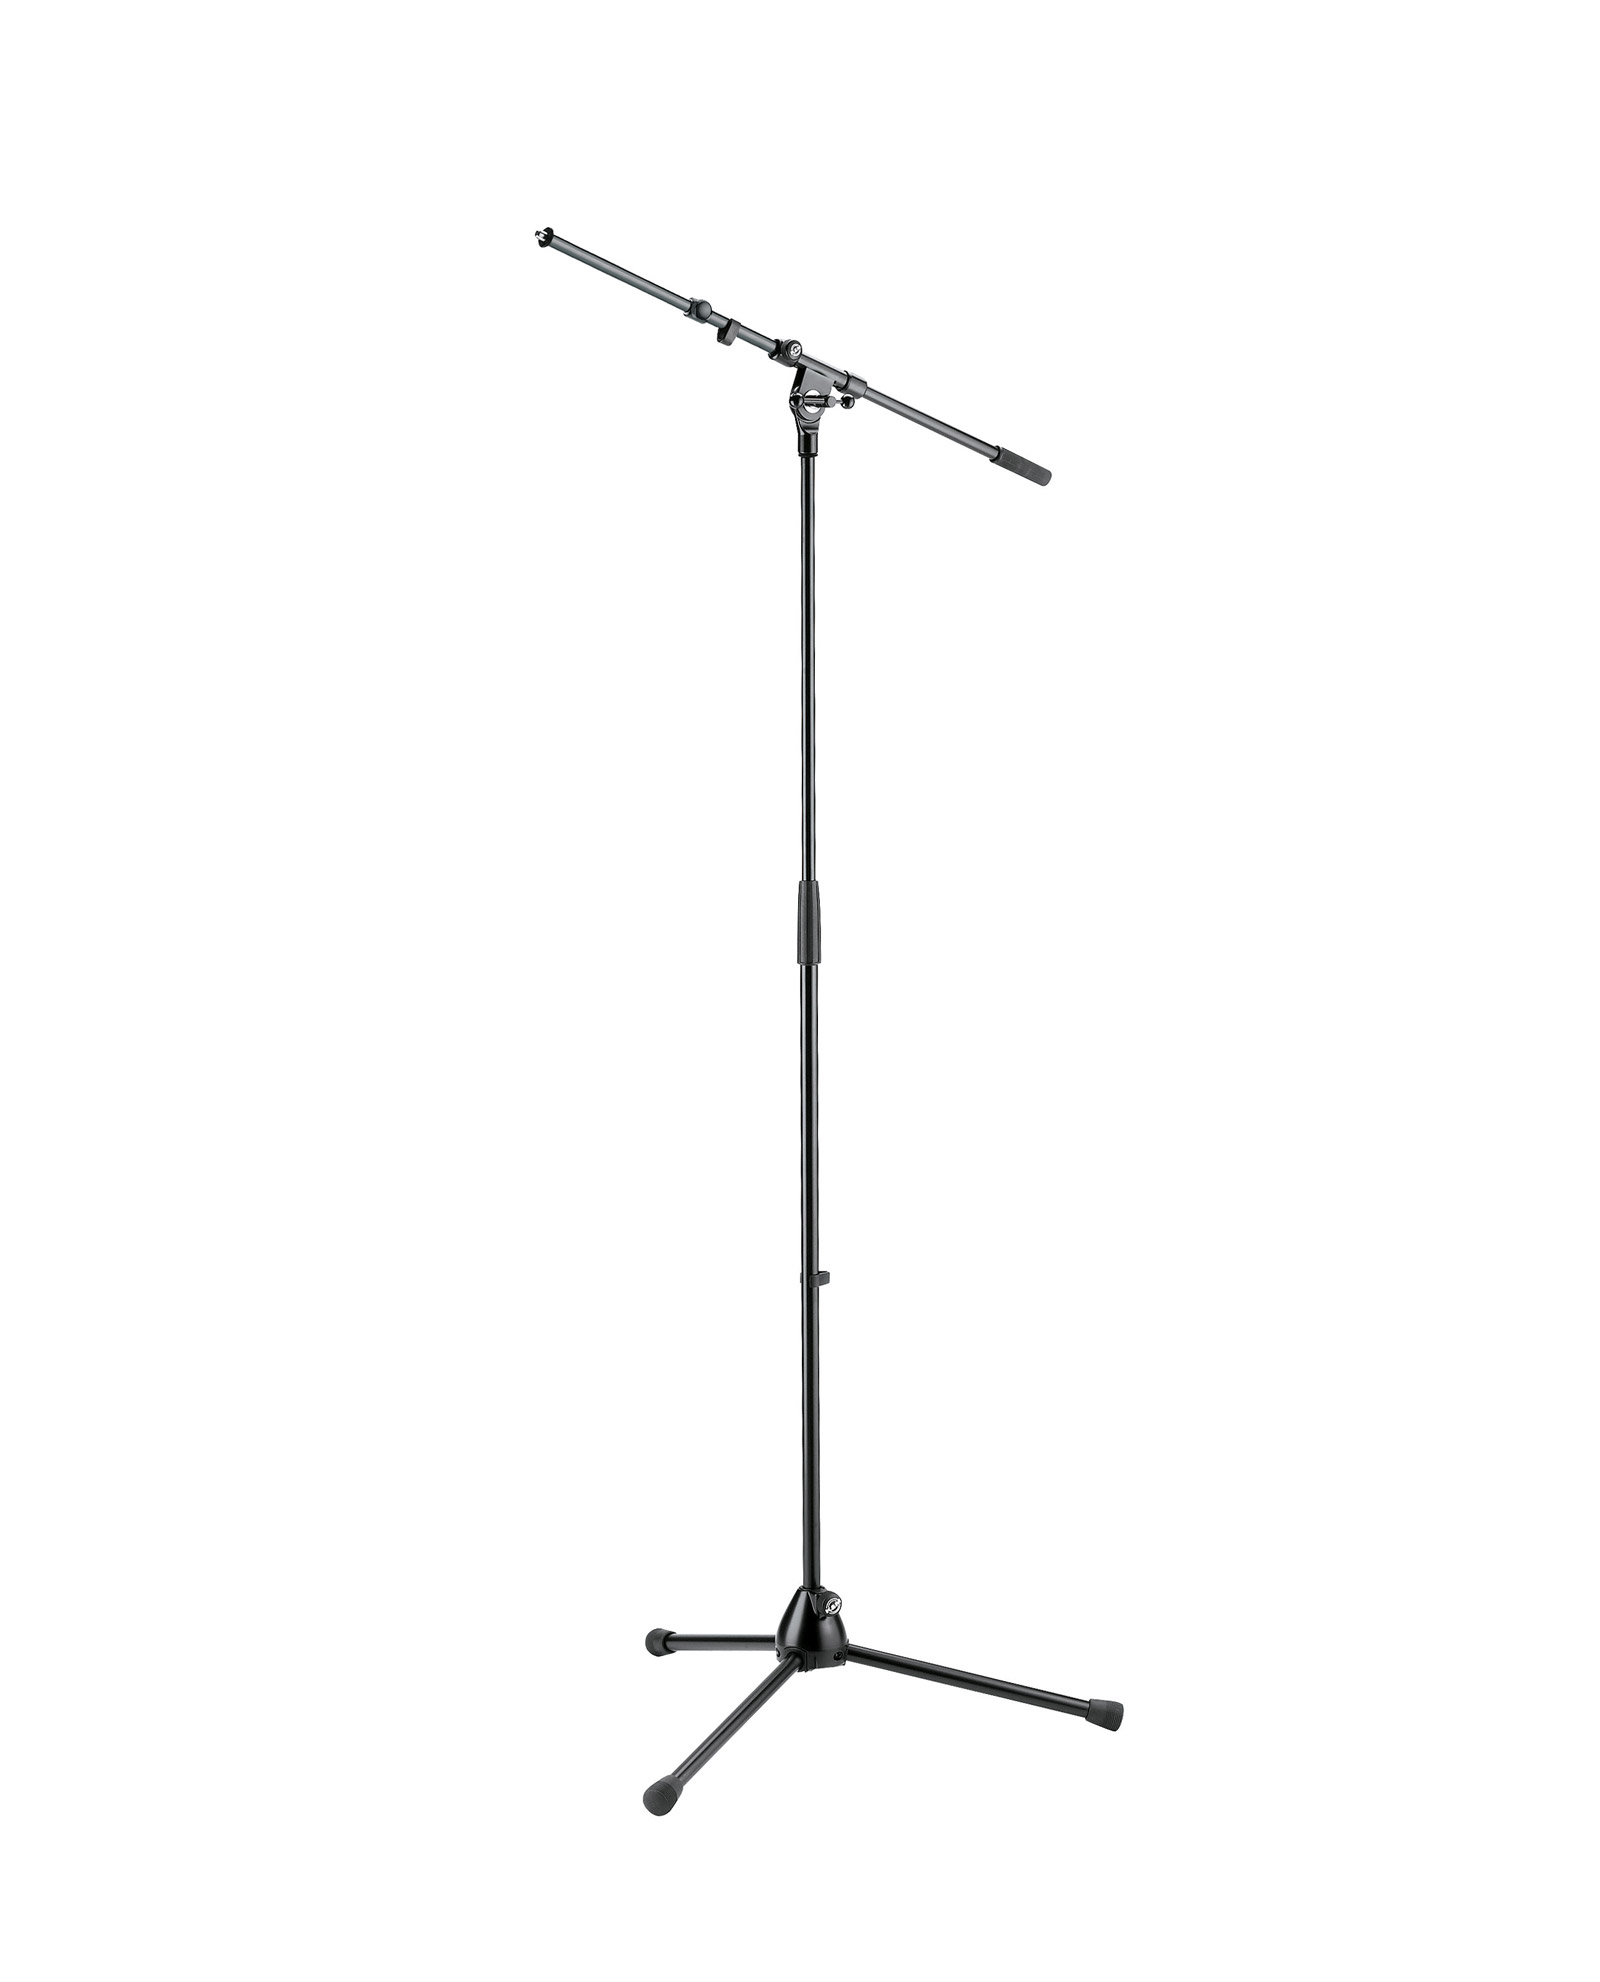 K&m 210 9 Microphone Stand